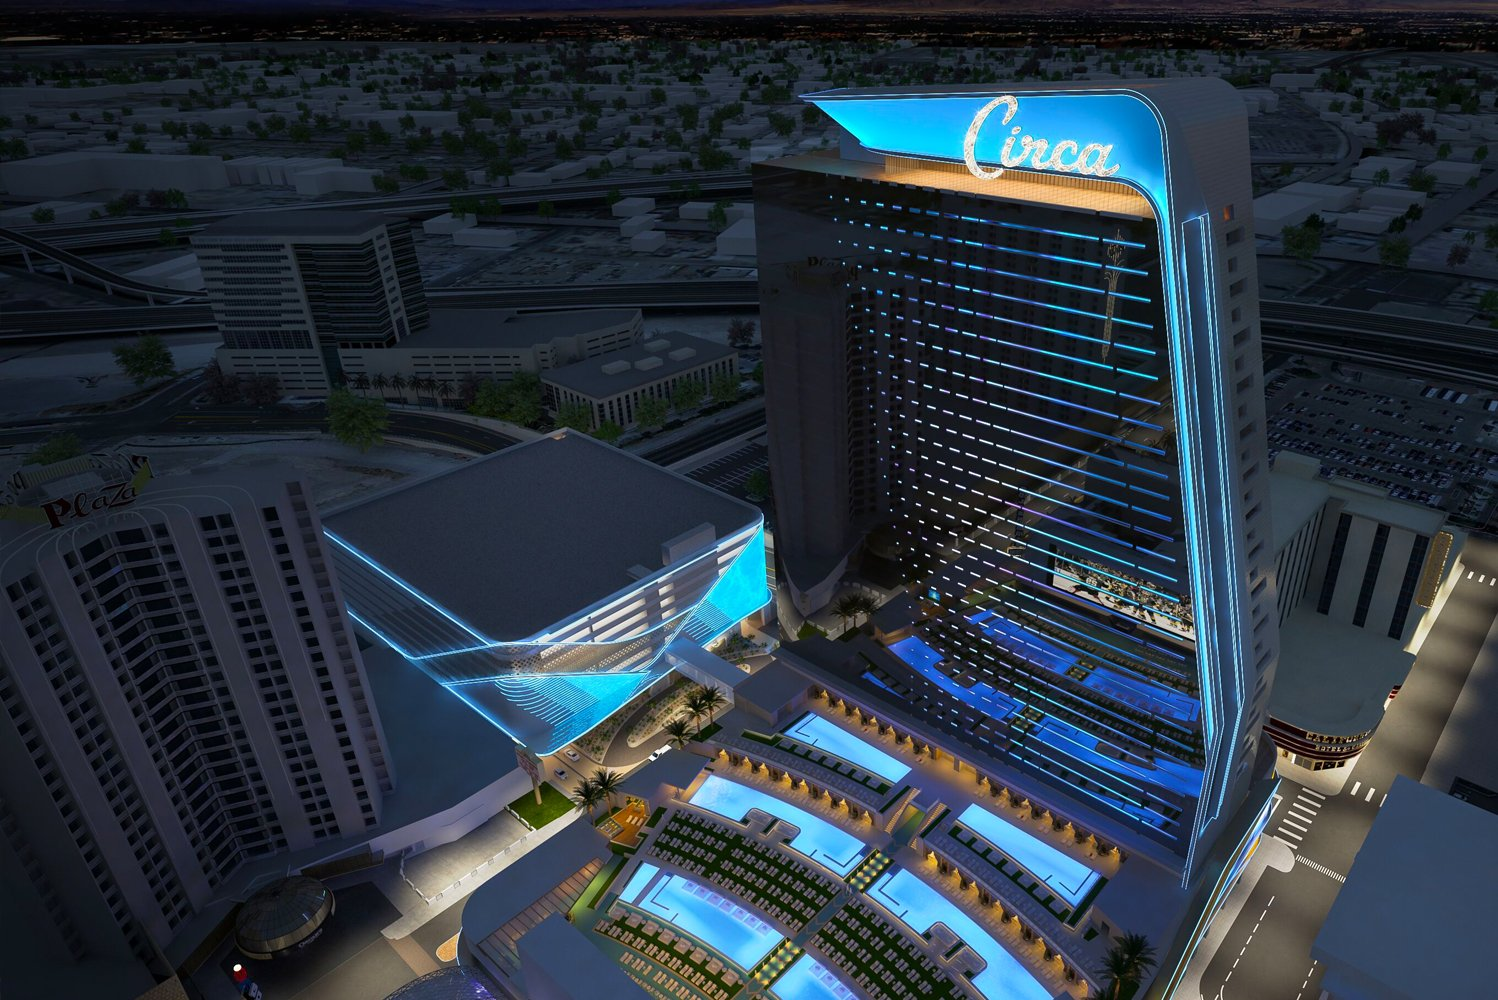 Capitalizing on the sunny Las Vegas weather, one of Circa's key features will be an outdoor pool amphitheater.